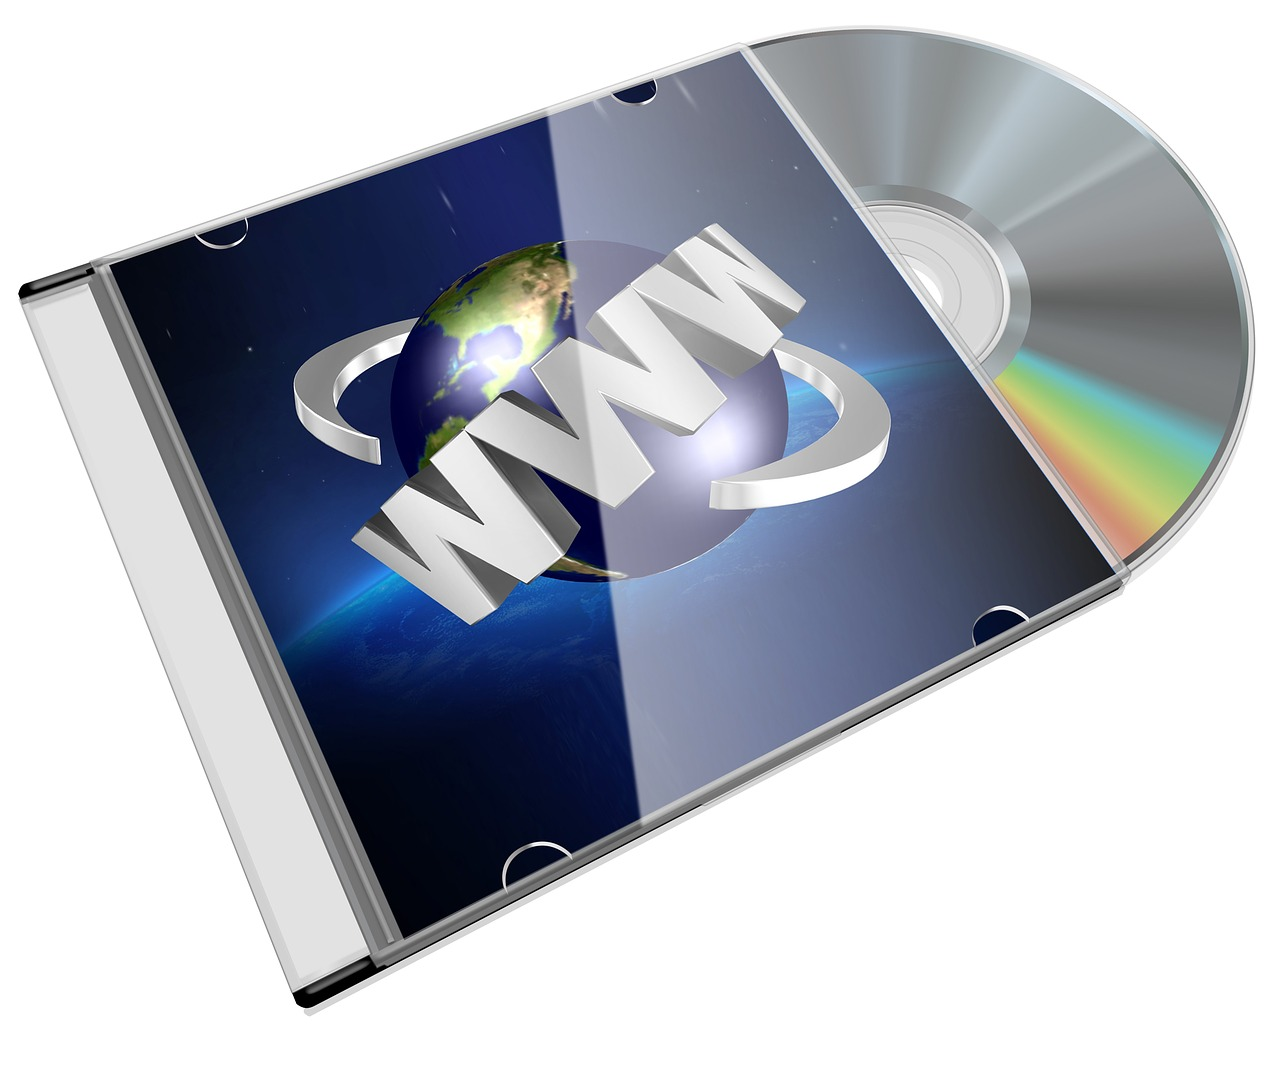 CD-Rom Drive n/a Free Download